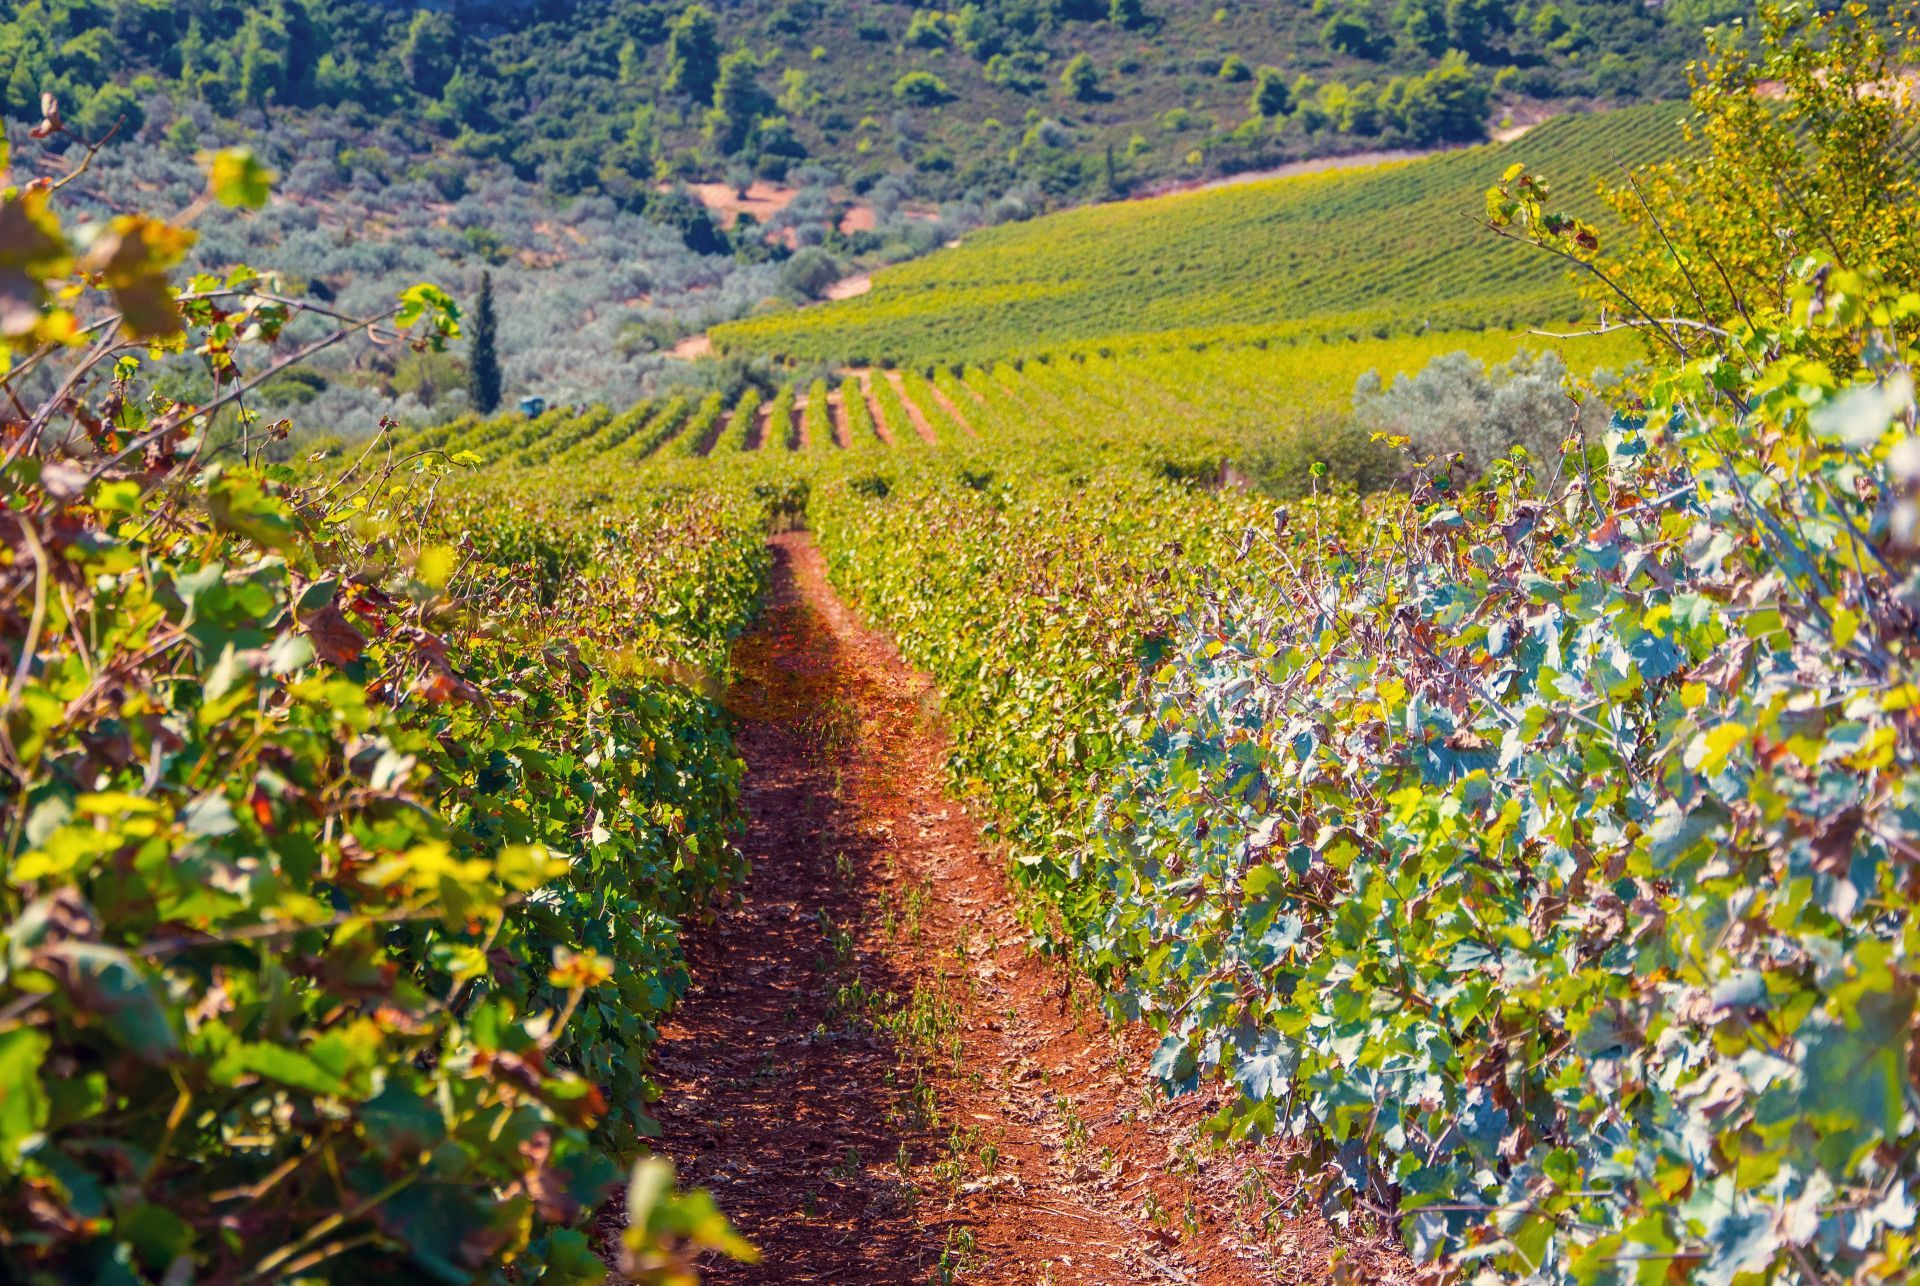 Wineries in Tinos